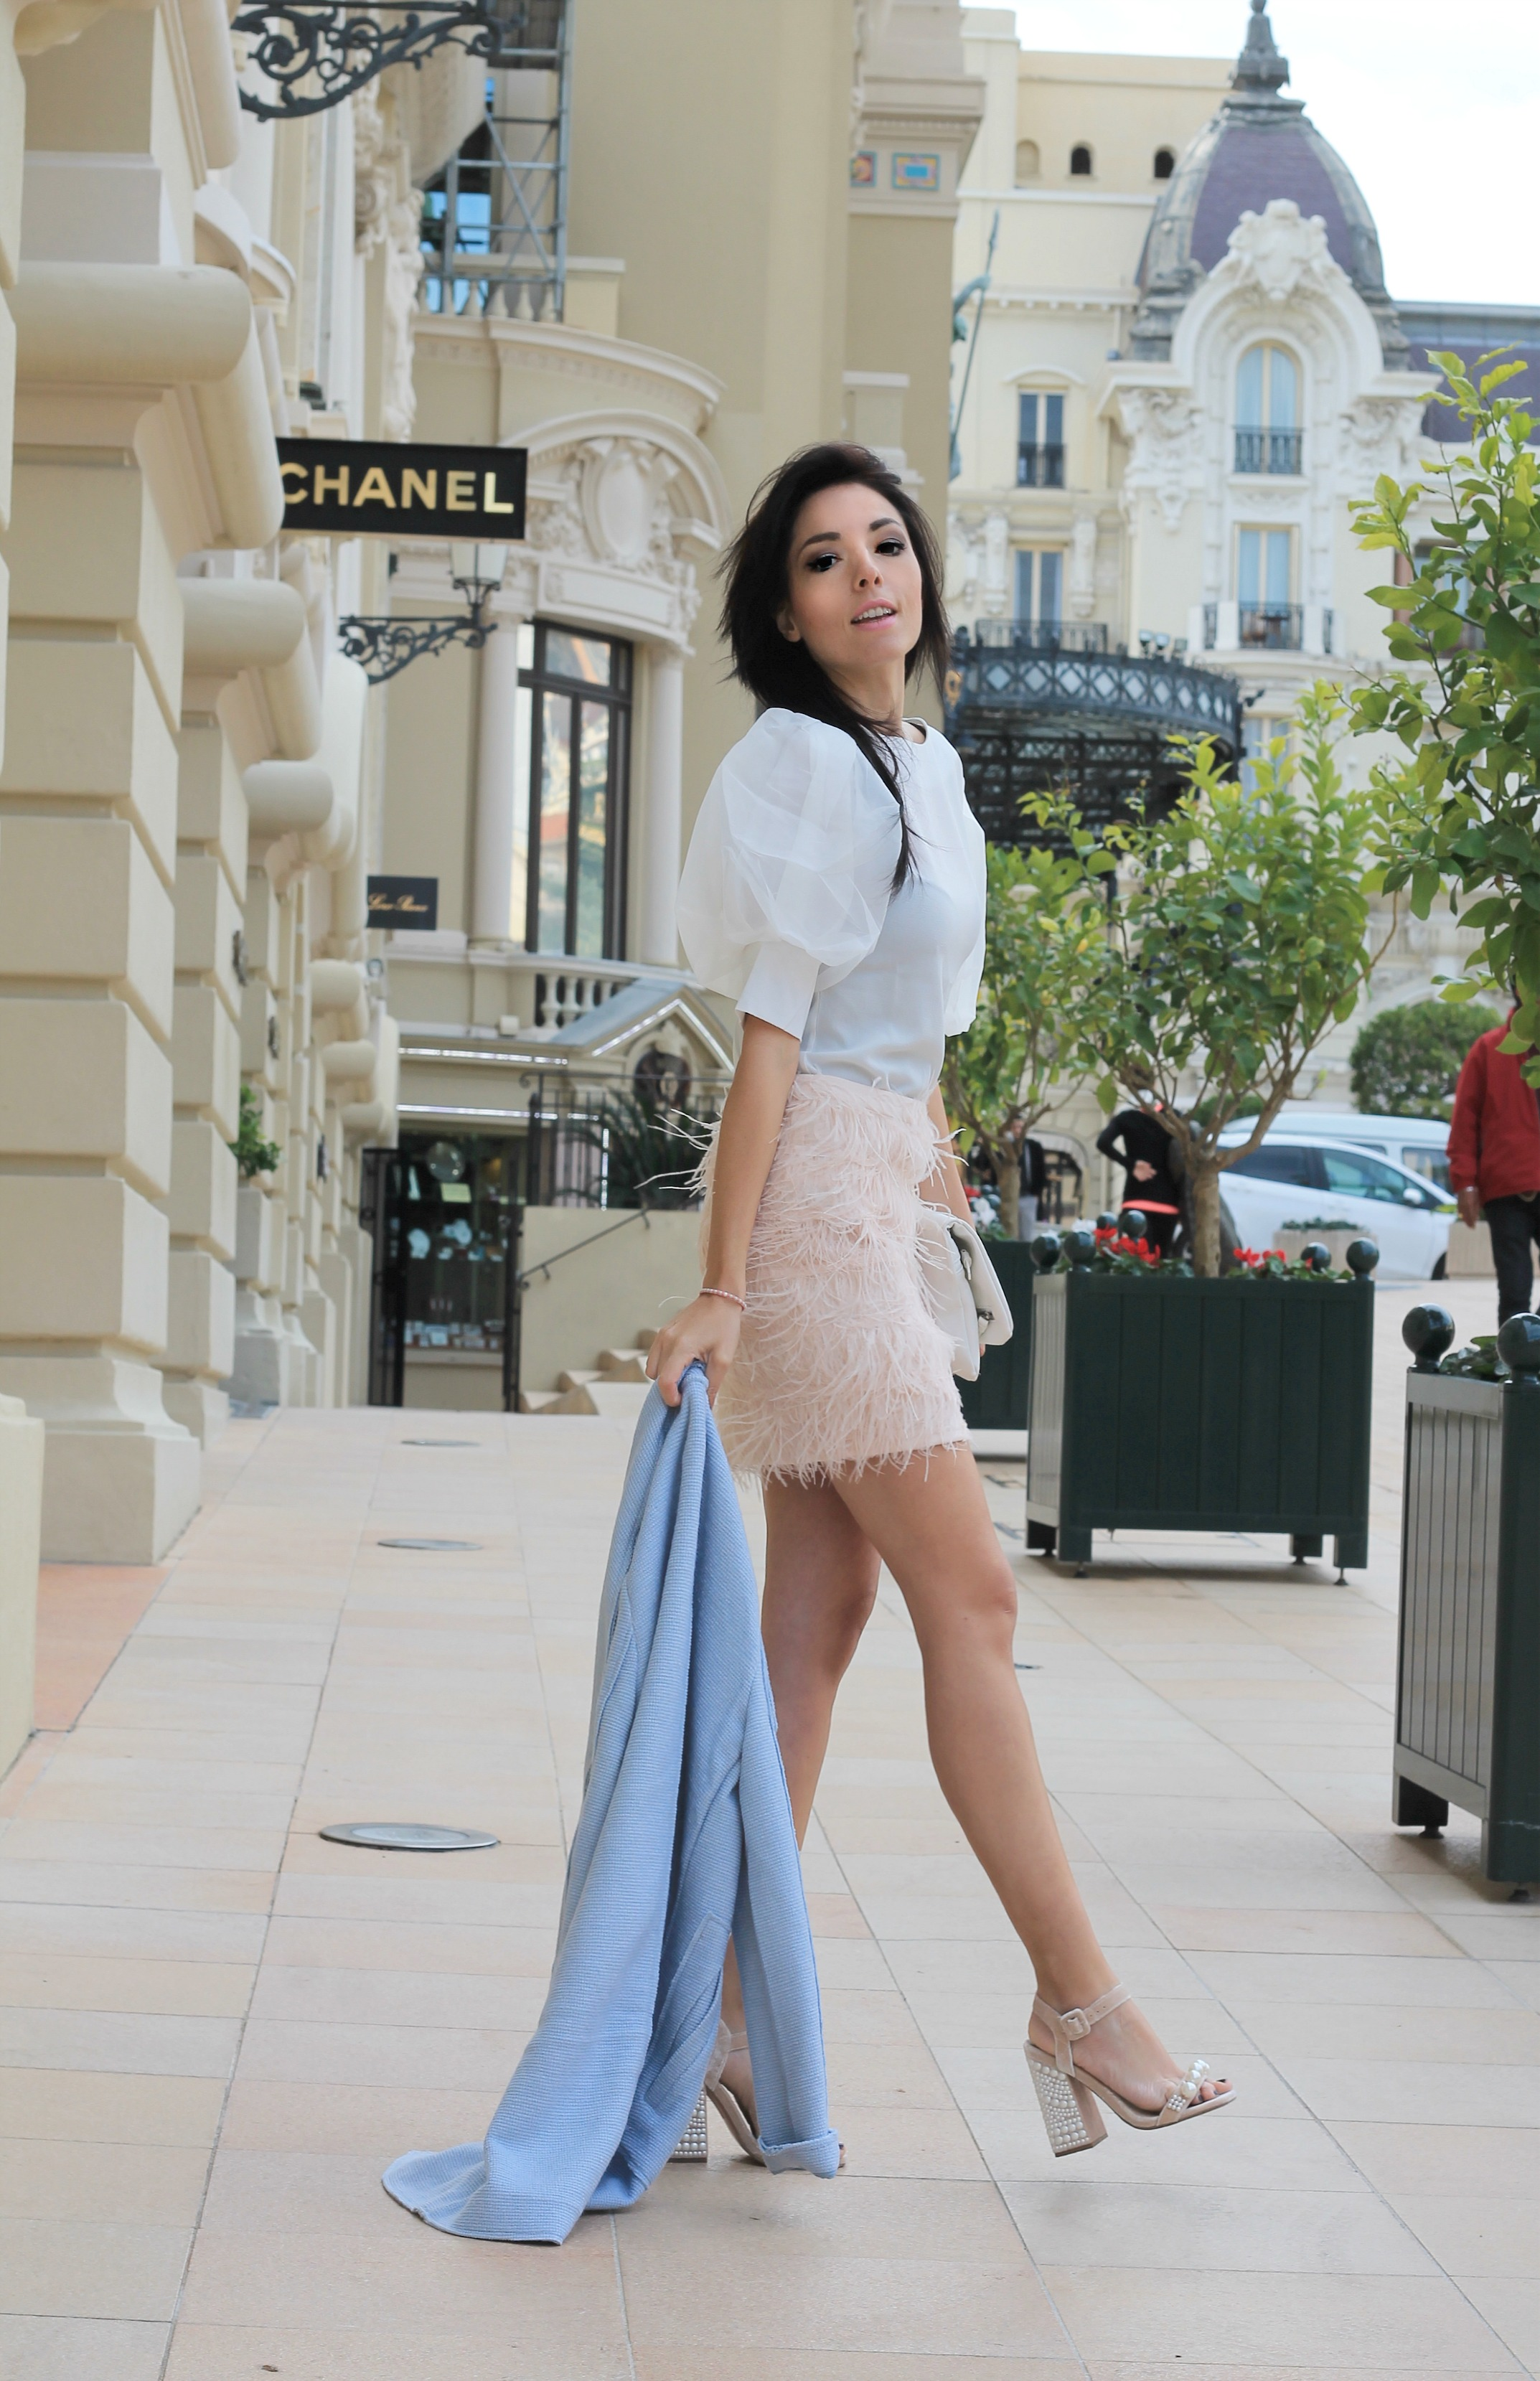 Sul potere dell'autoironia, theladycracy.it, elisa bellino, fashion blog, fashion blogger italiane, fashion blogger famose, gonna piume, feathers skirt, feathers outfit, montecarlo blogger, chic look, pastel lovers, outfit pastello, top fashion blogger italia,